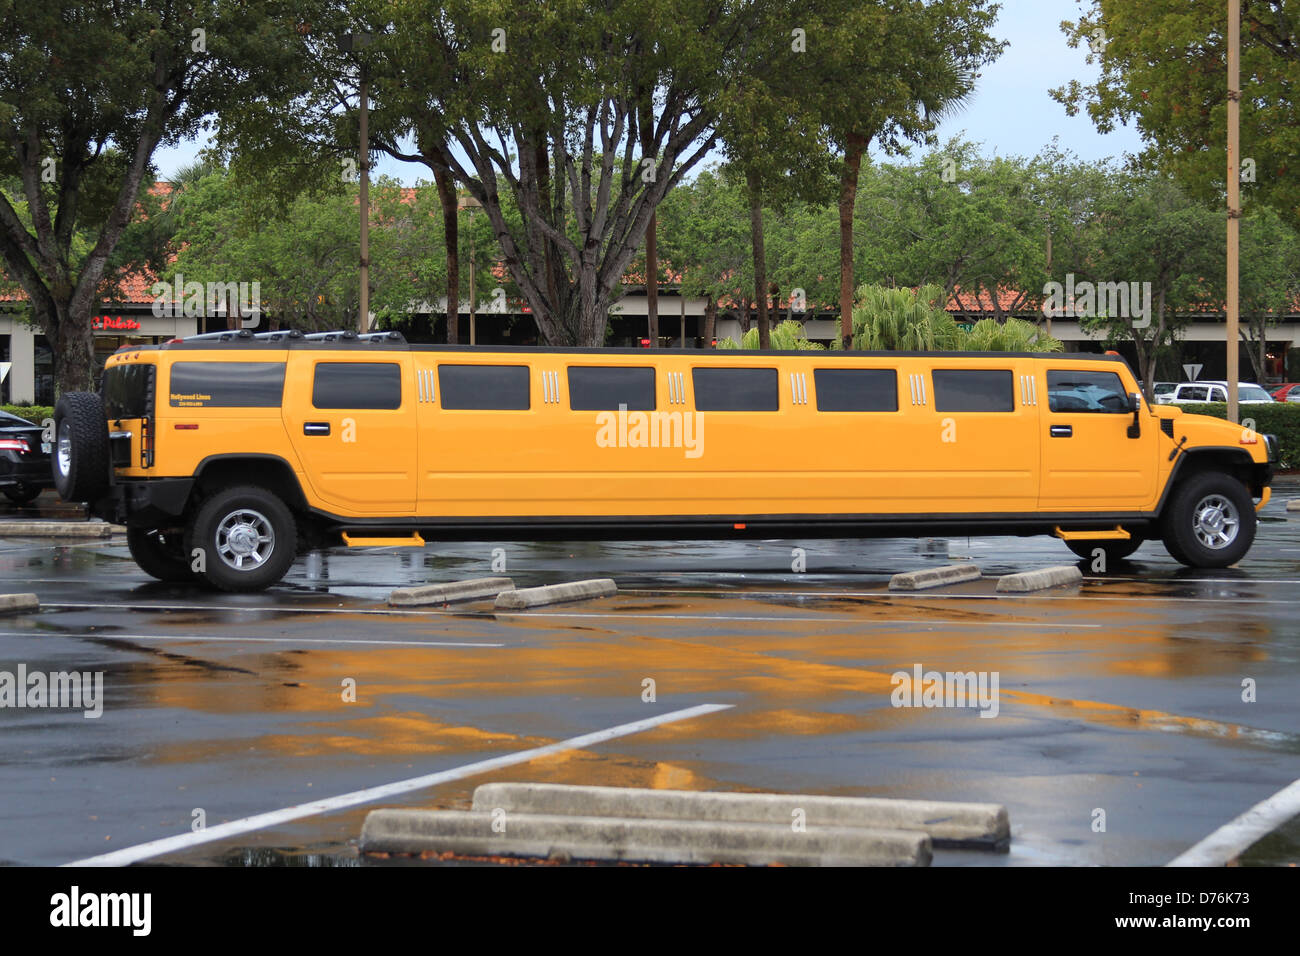 A Hummer limousine parked in a car park in Naples, Florida - Stock Image